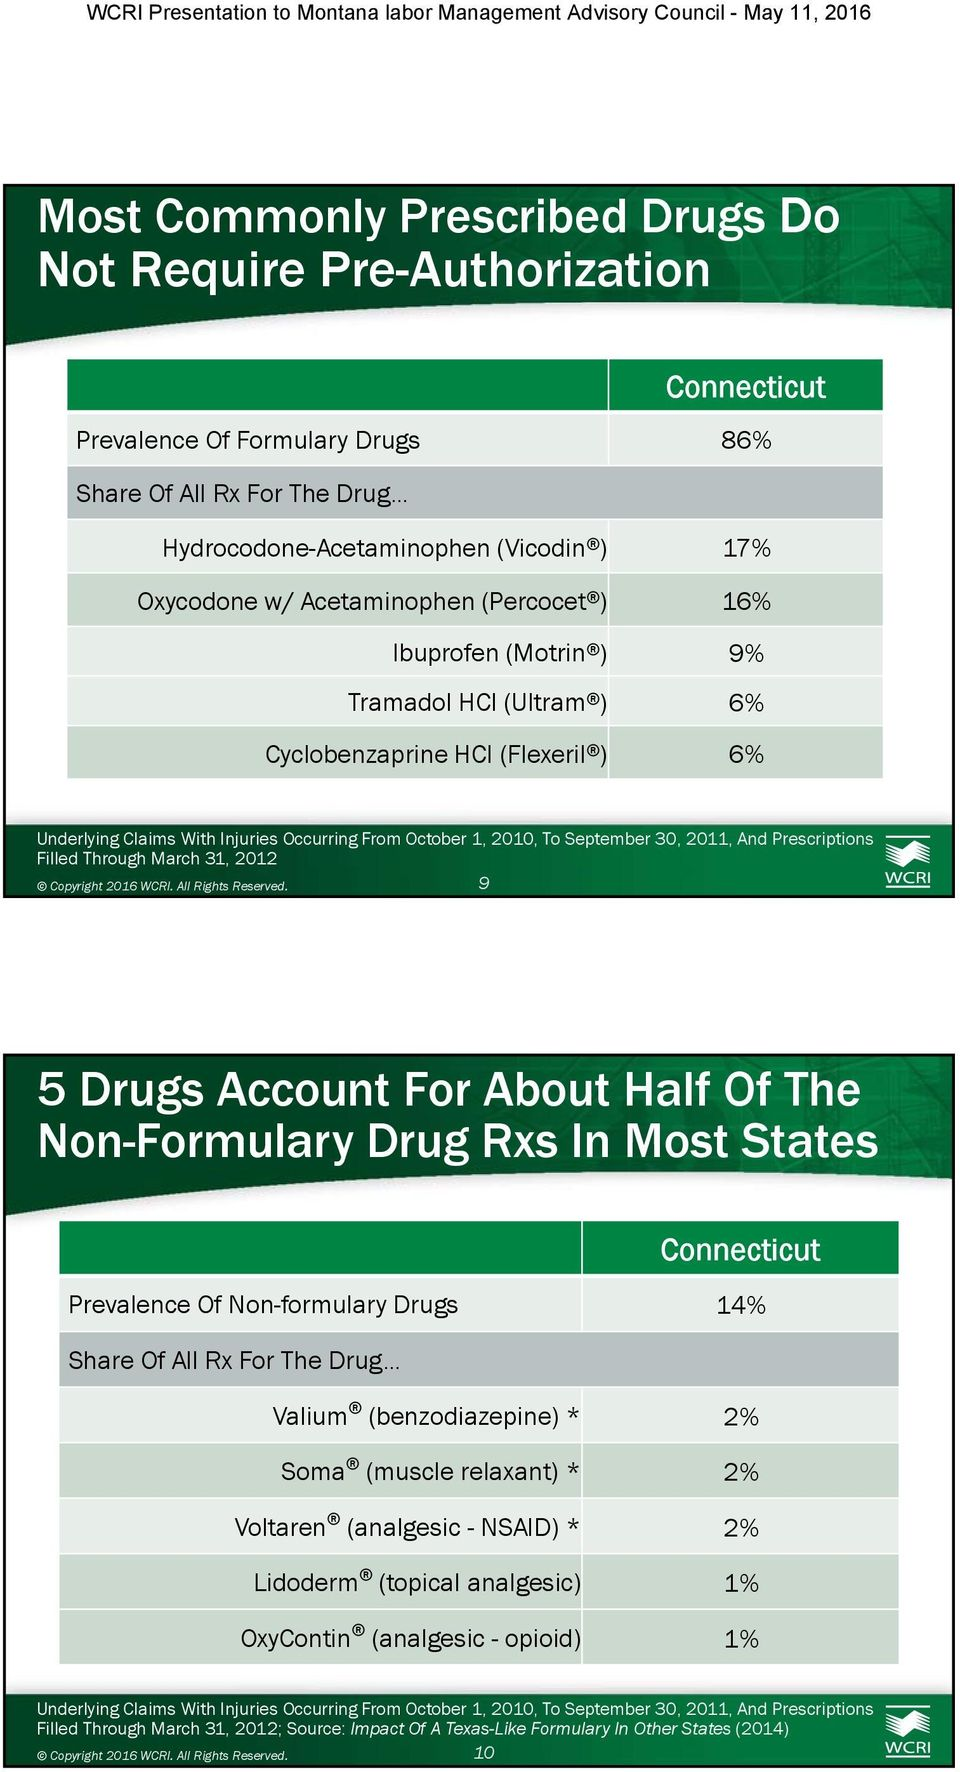 (Flexeril ) 6% Filled Through March 31, 2012 9 5 Drugs Account For About Half Of The Non-Formulary Drug Rxs In Most States Connecticut Prevalence Of Non-formulary Drugs 14%